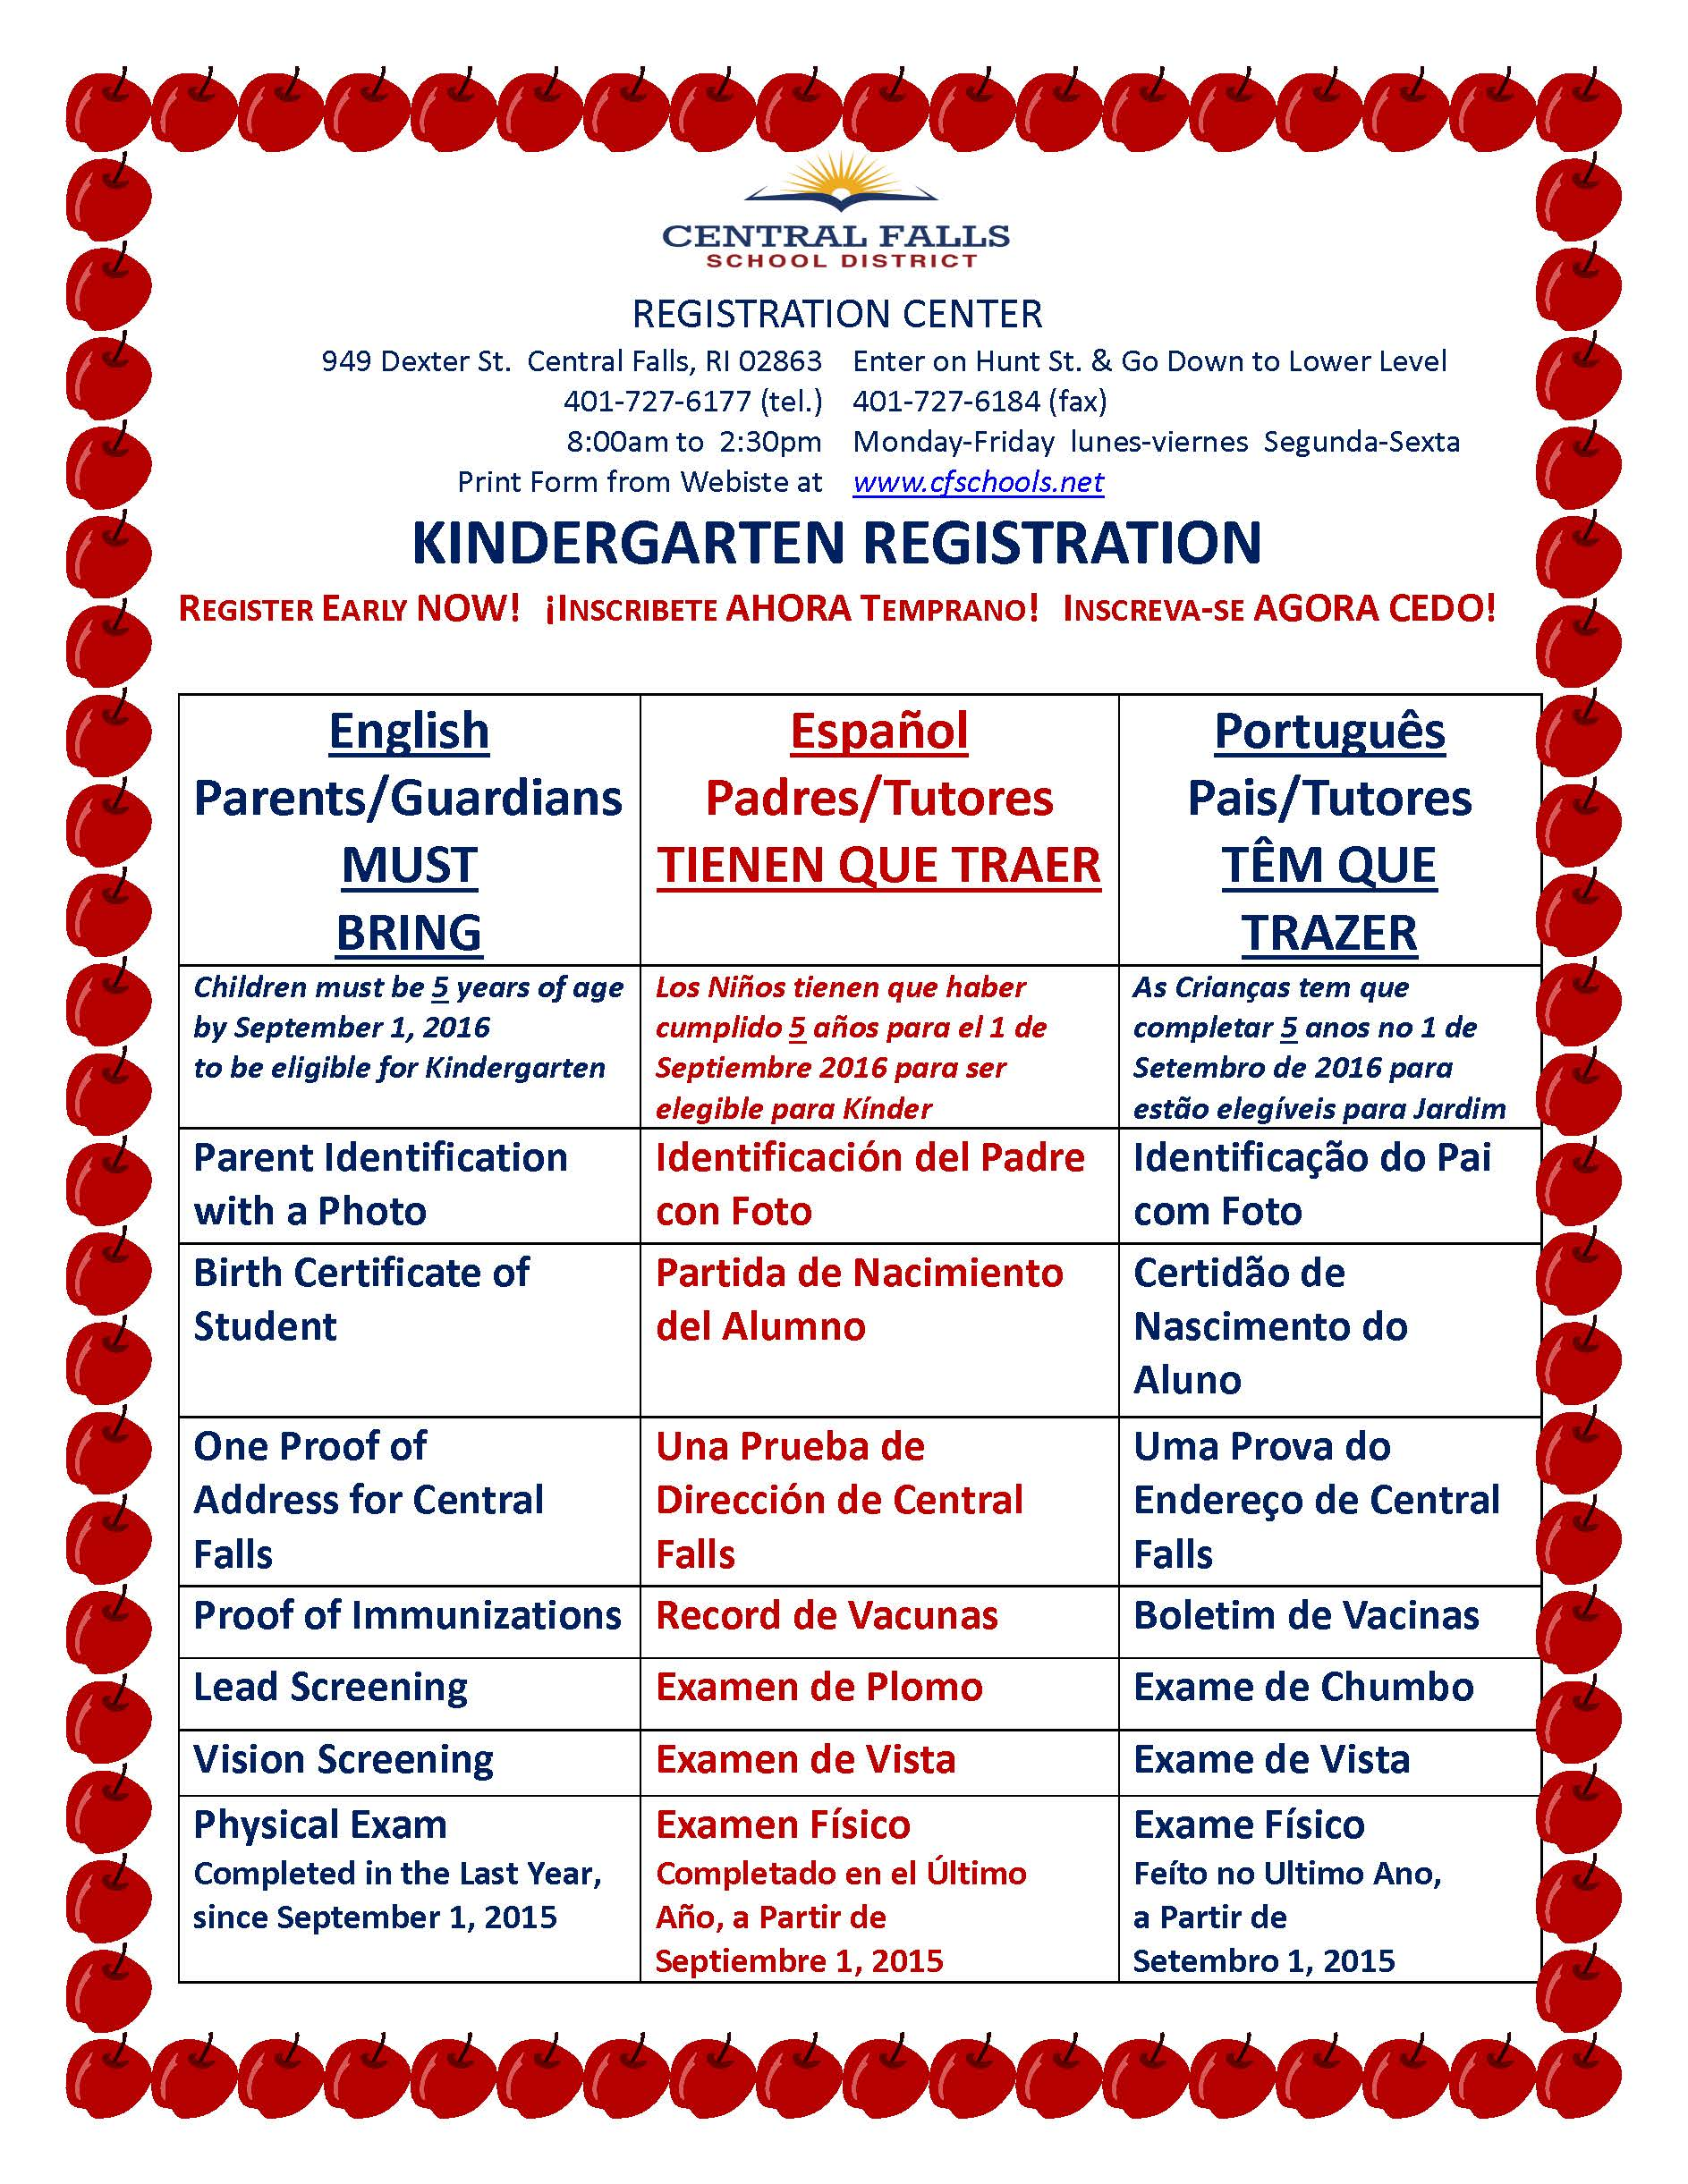 kindergarten_registration.jpg